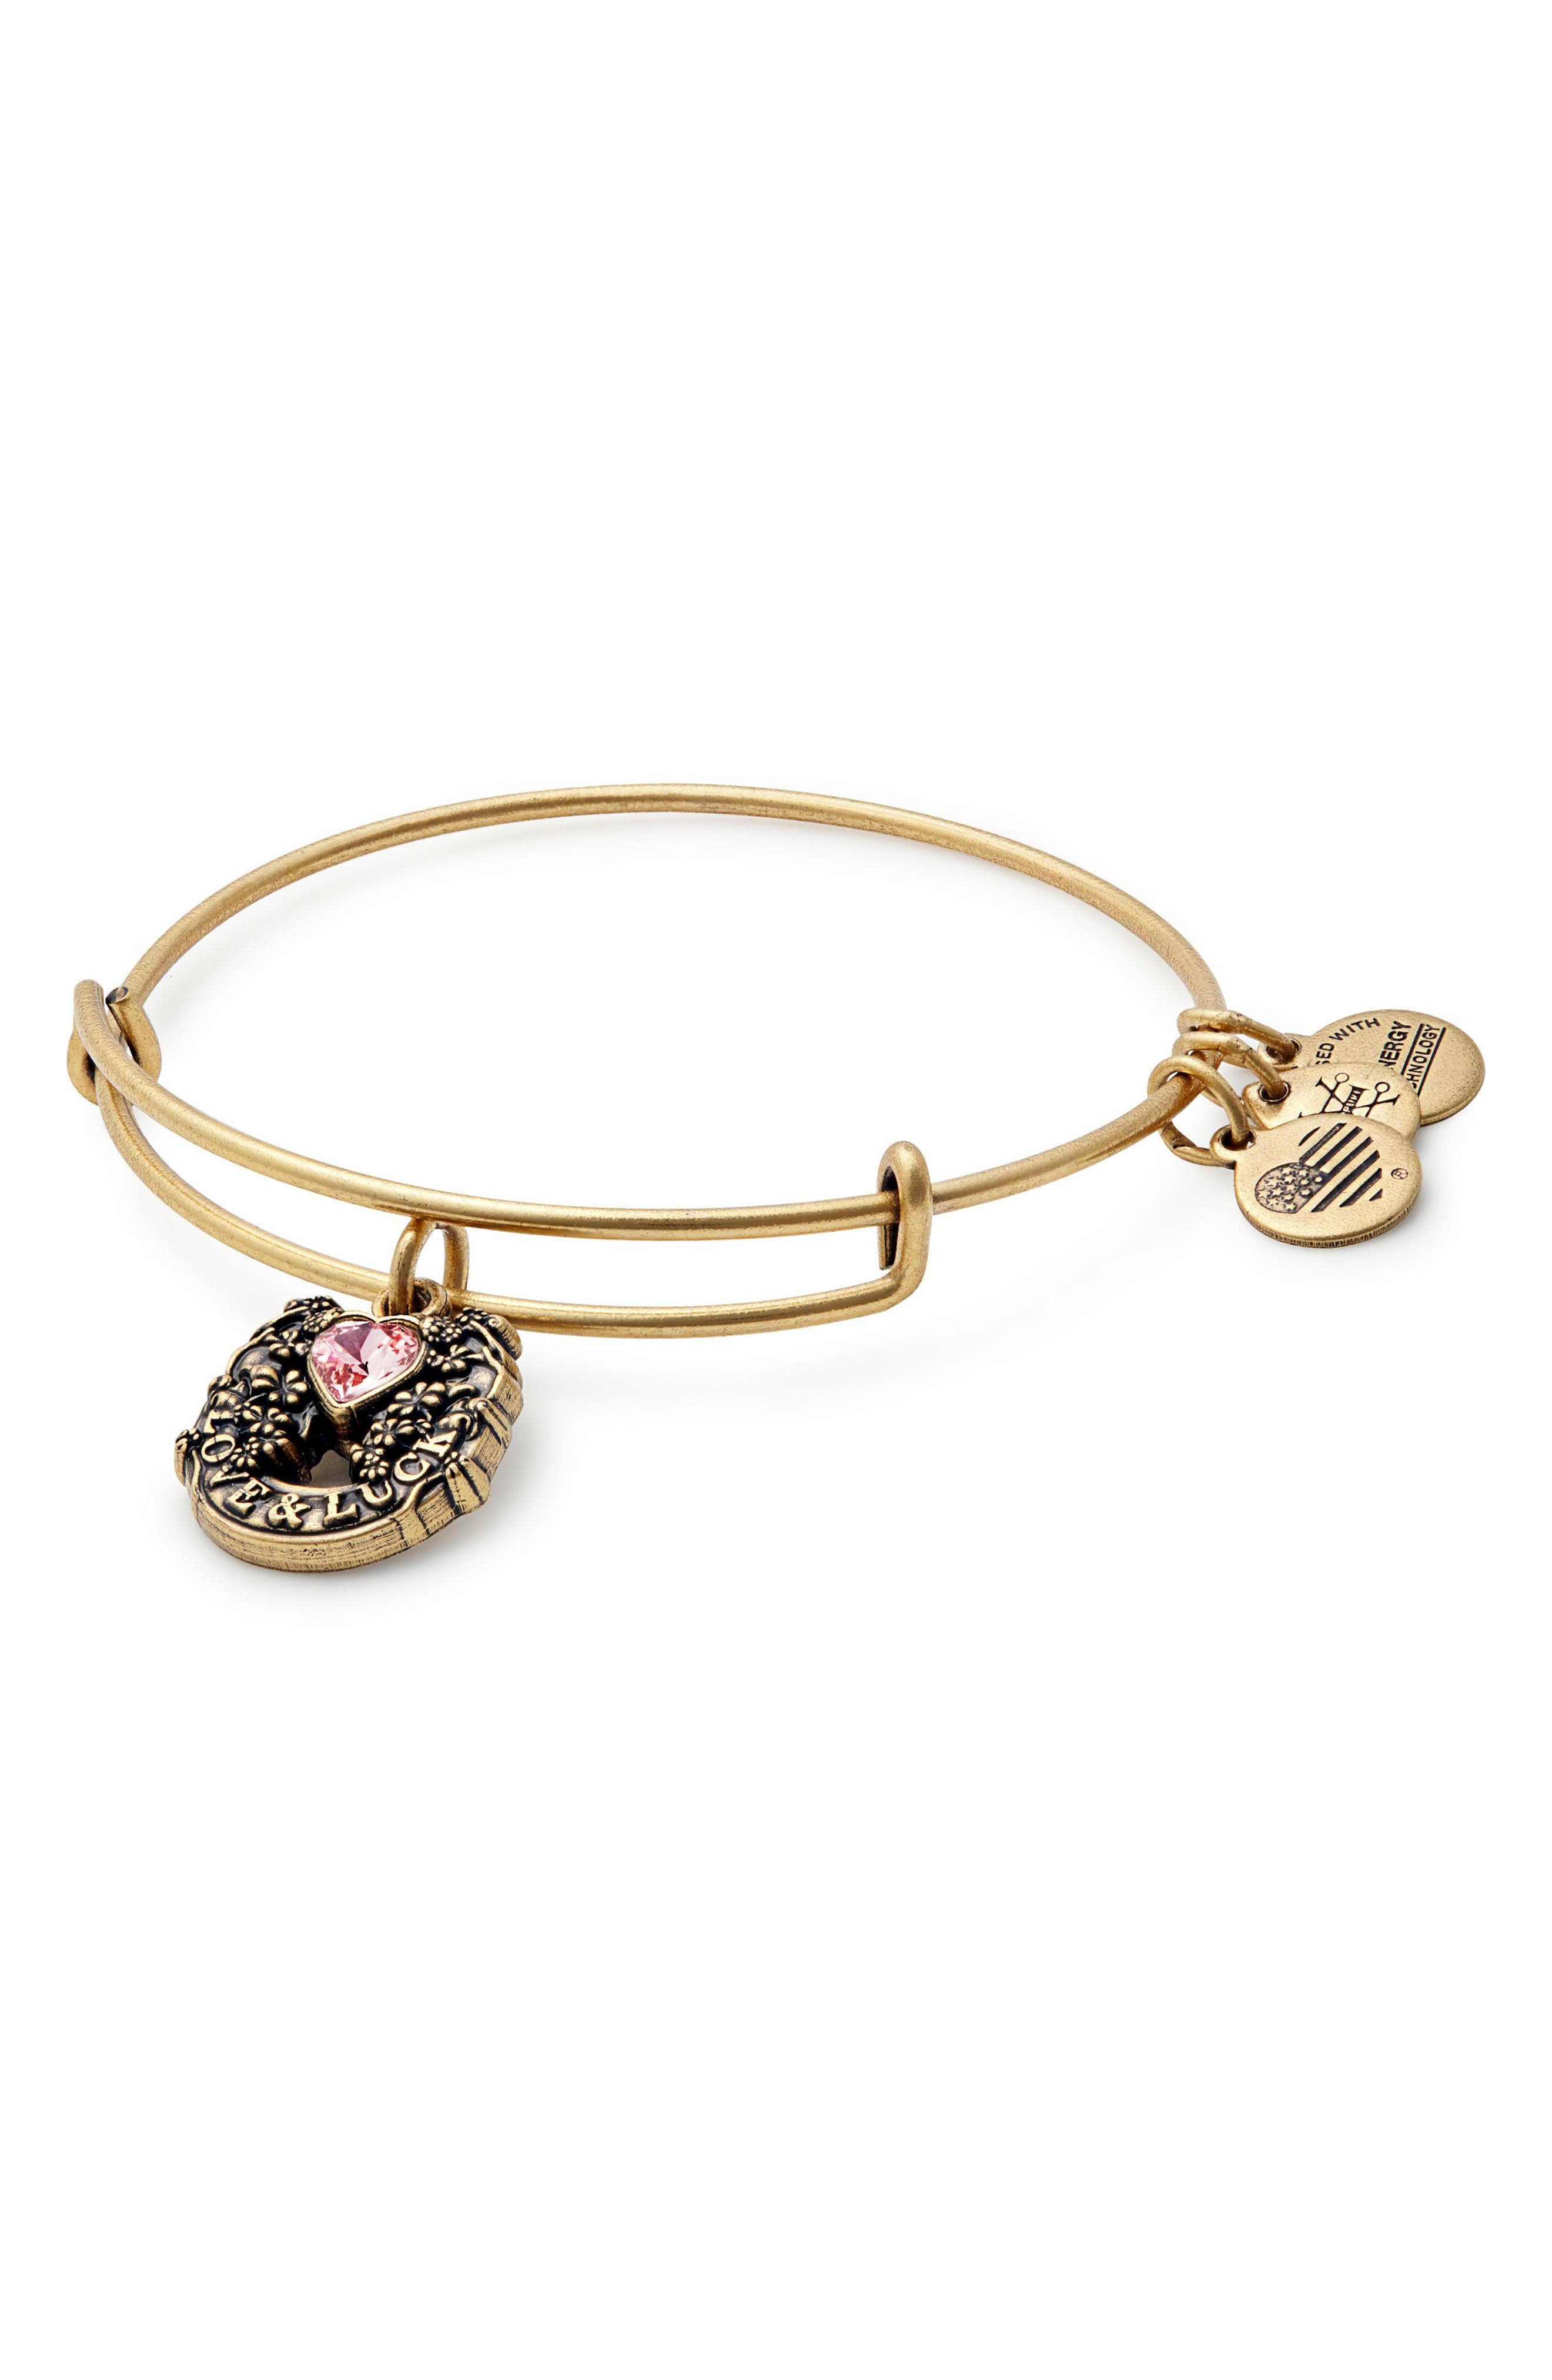 Alternate Image 1 Selected - Alex and Ani Fortune's Favor Adjustable Wire Bangle (Nordstrom Exclusive)